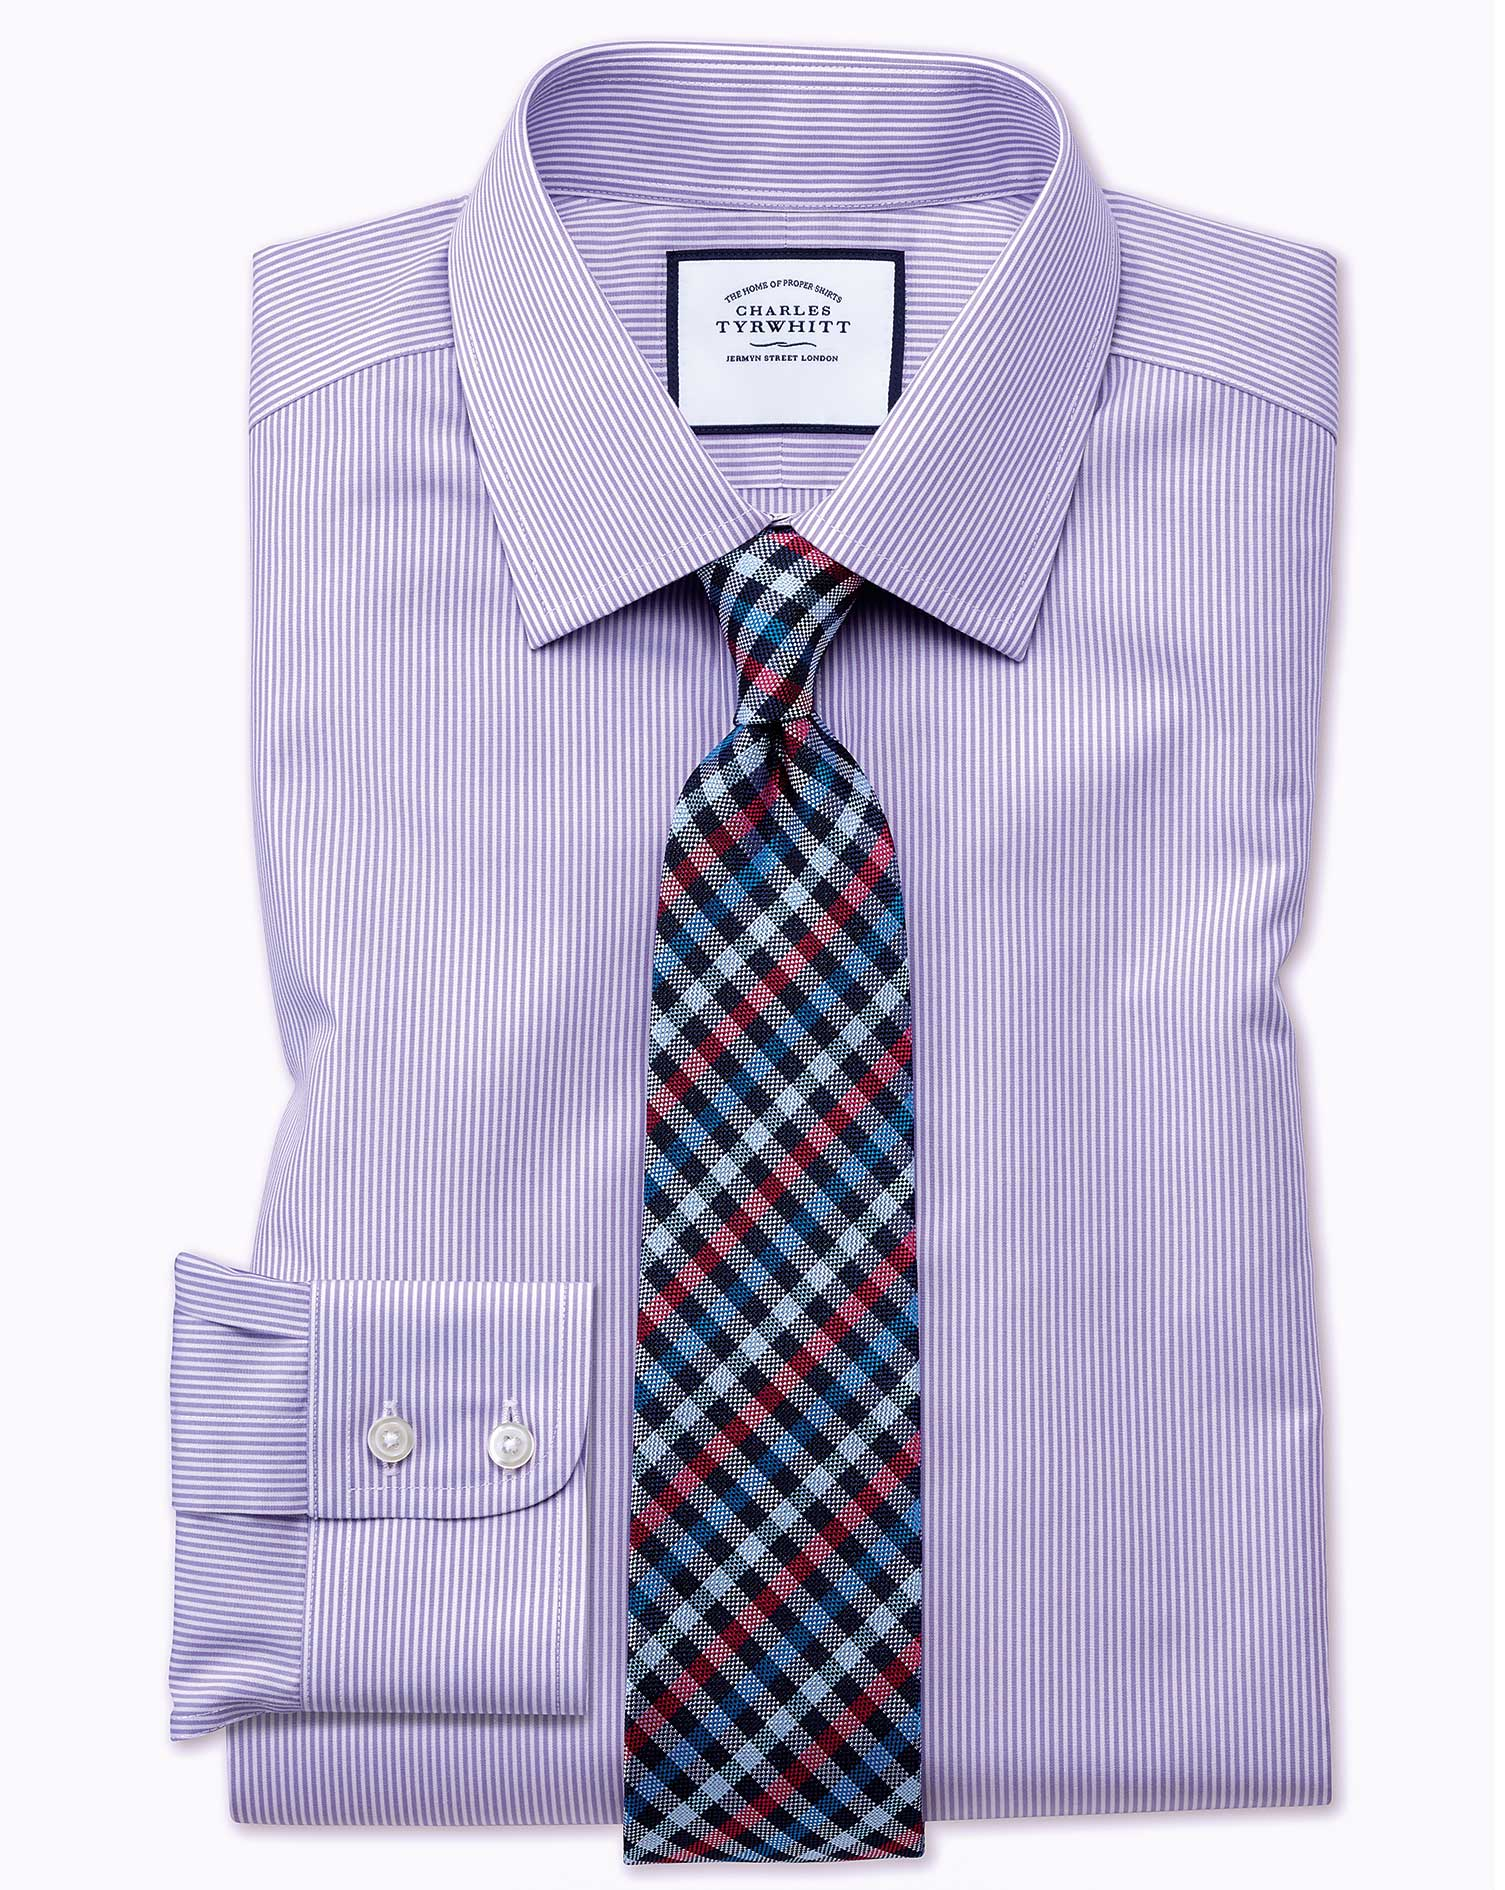 Classic Fit Non-Iron Bengal Stripe Lilac Cotton Formal Shirt Single Cuff Size 18/35 by Charles Tyrwh